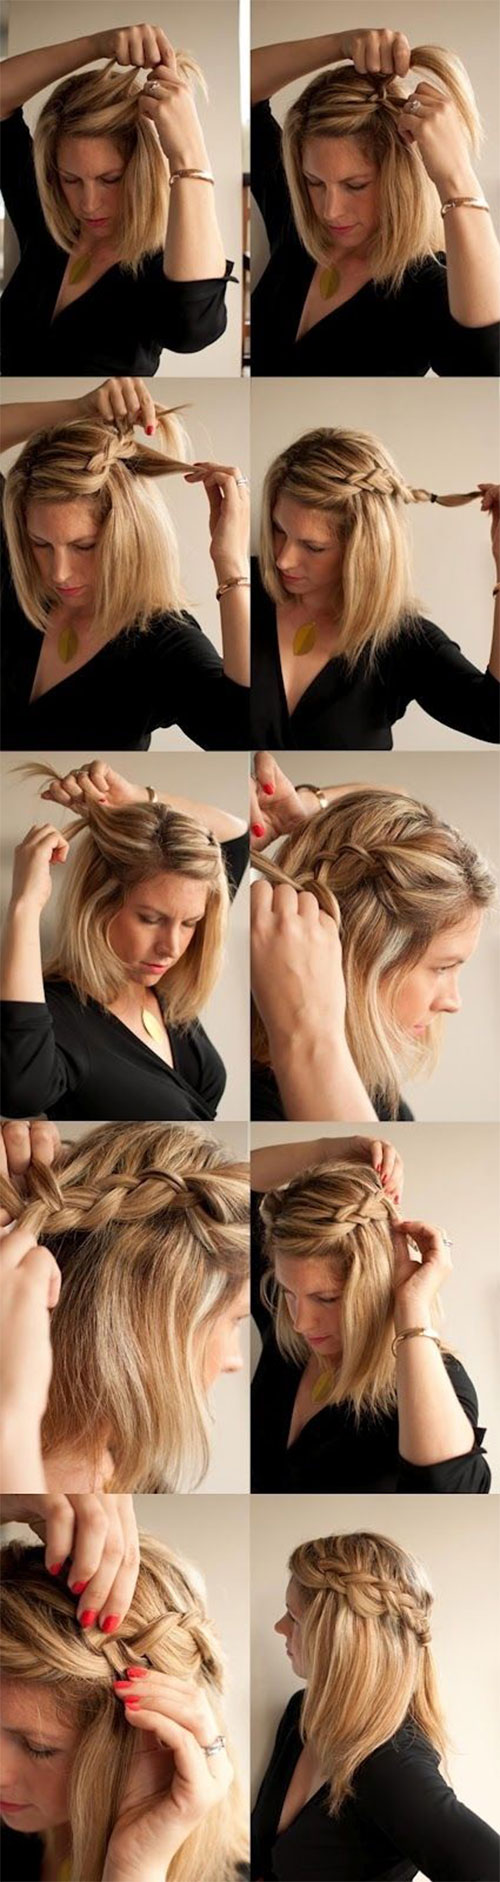 15 Step By Step Summer Hairstyle Tutorials For Beginners ...